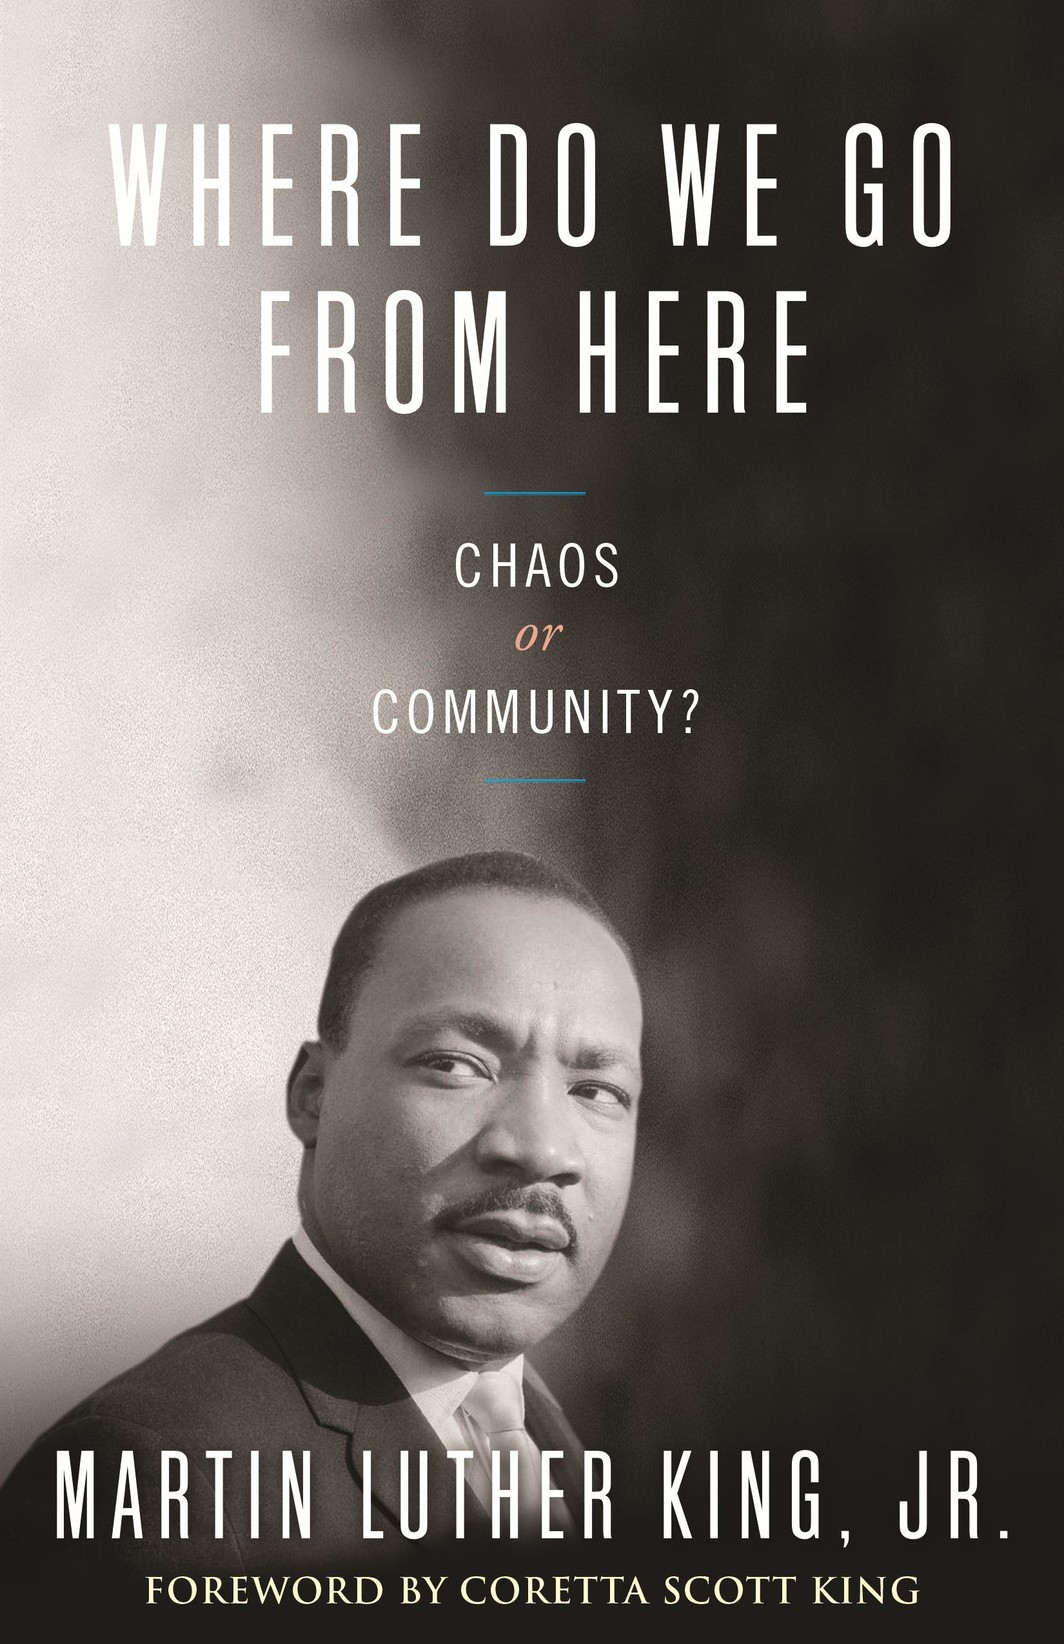 The cover of Where Do We Go from Here: Chaos or Community?